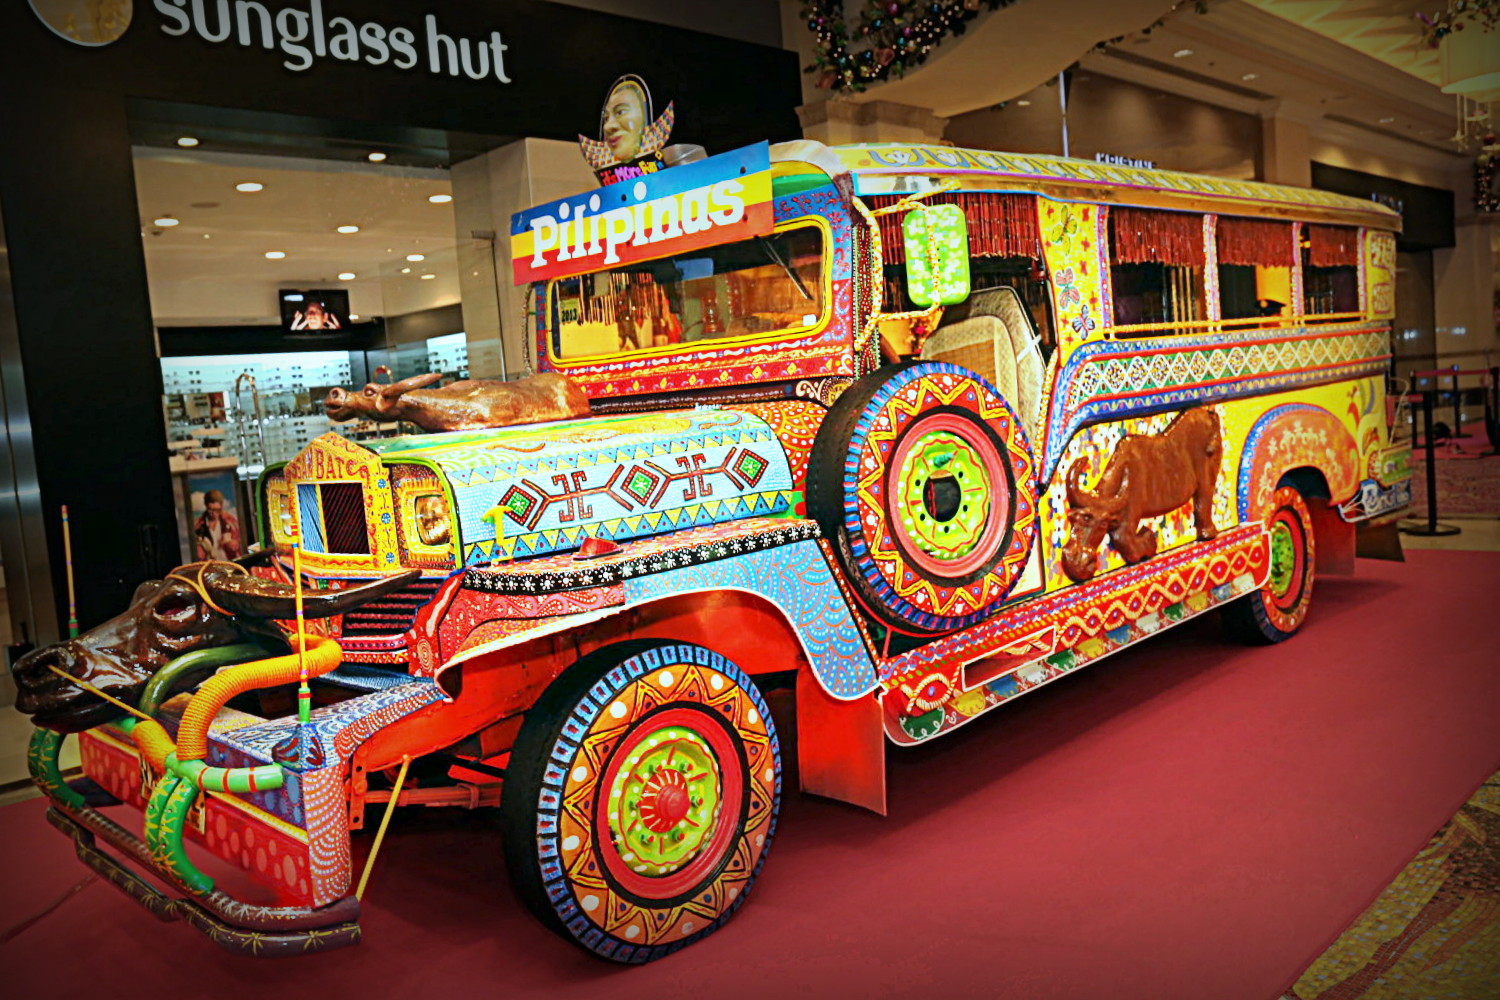 Jeepneys: souped-up rides from the Philippines / Boing Boing